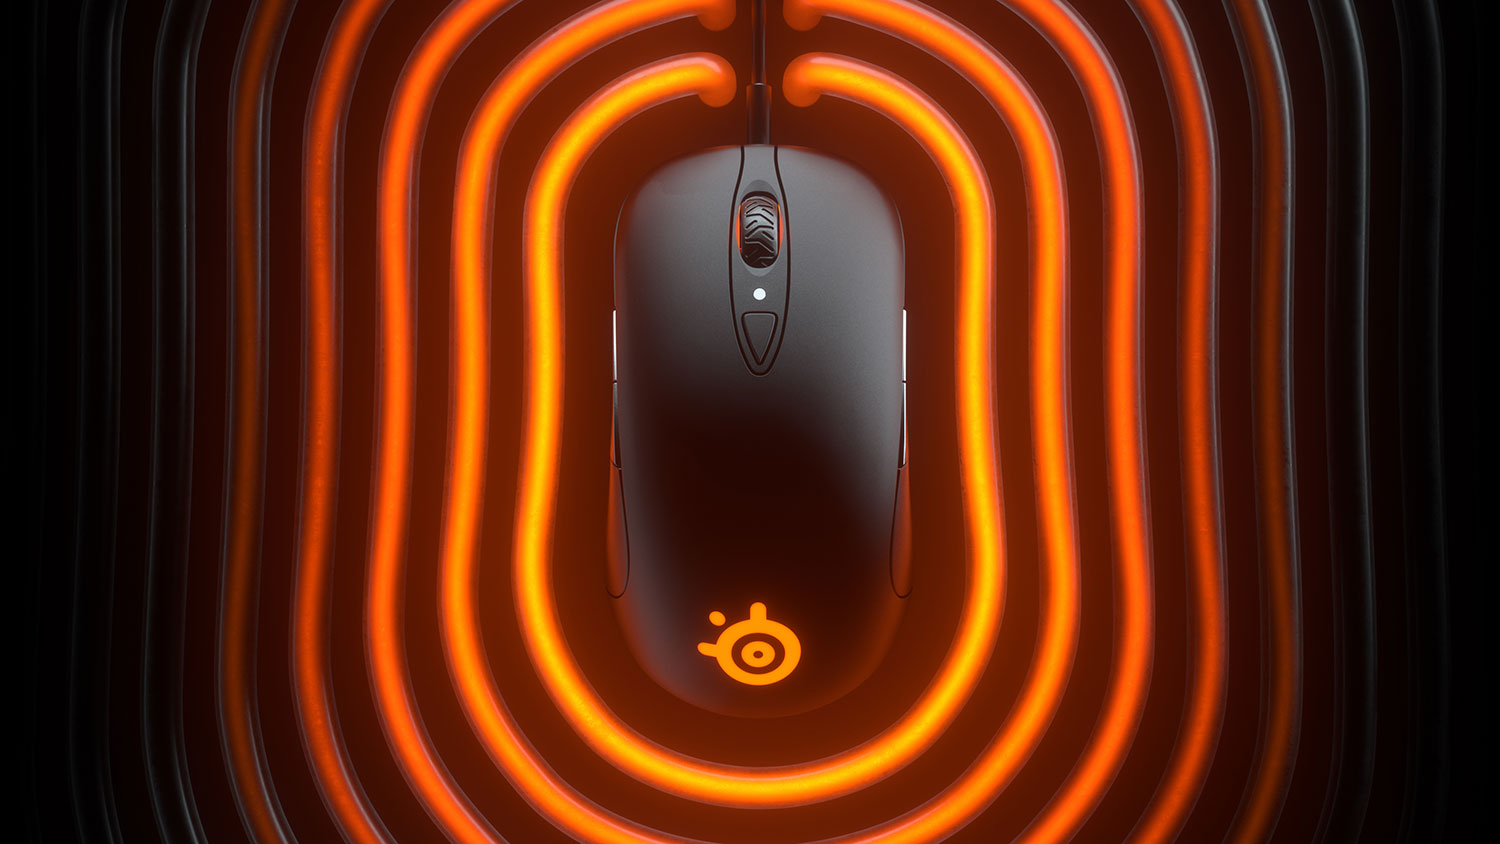 SteelSeries refreshed its original Sensei mouse with modern hardware | PC Gamer